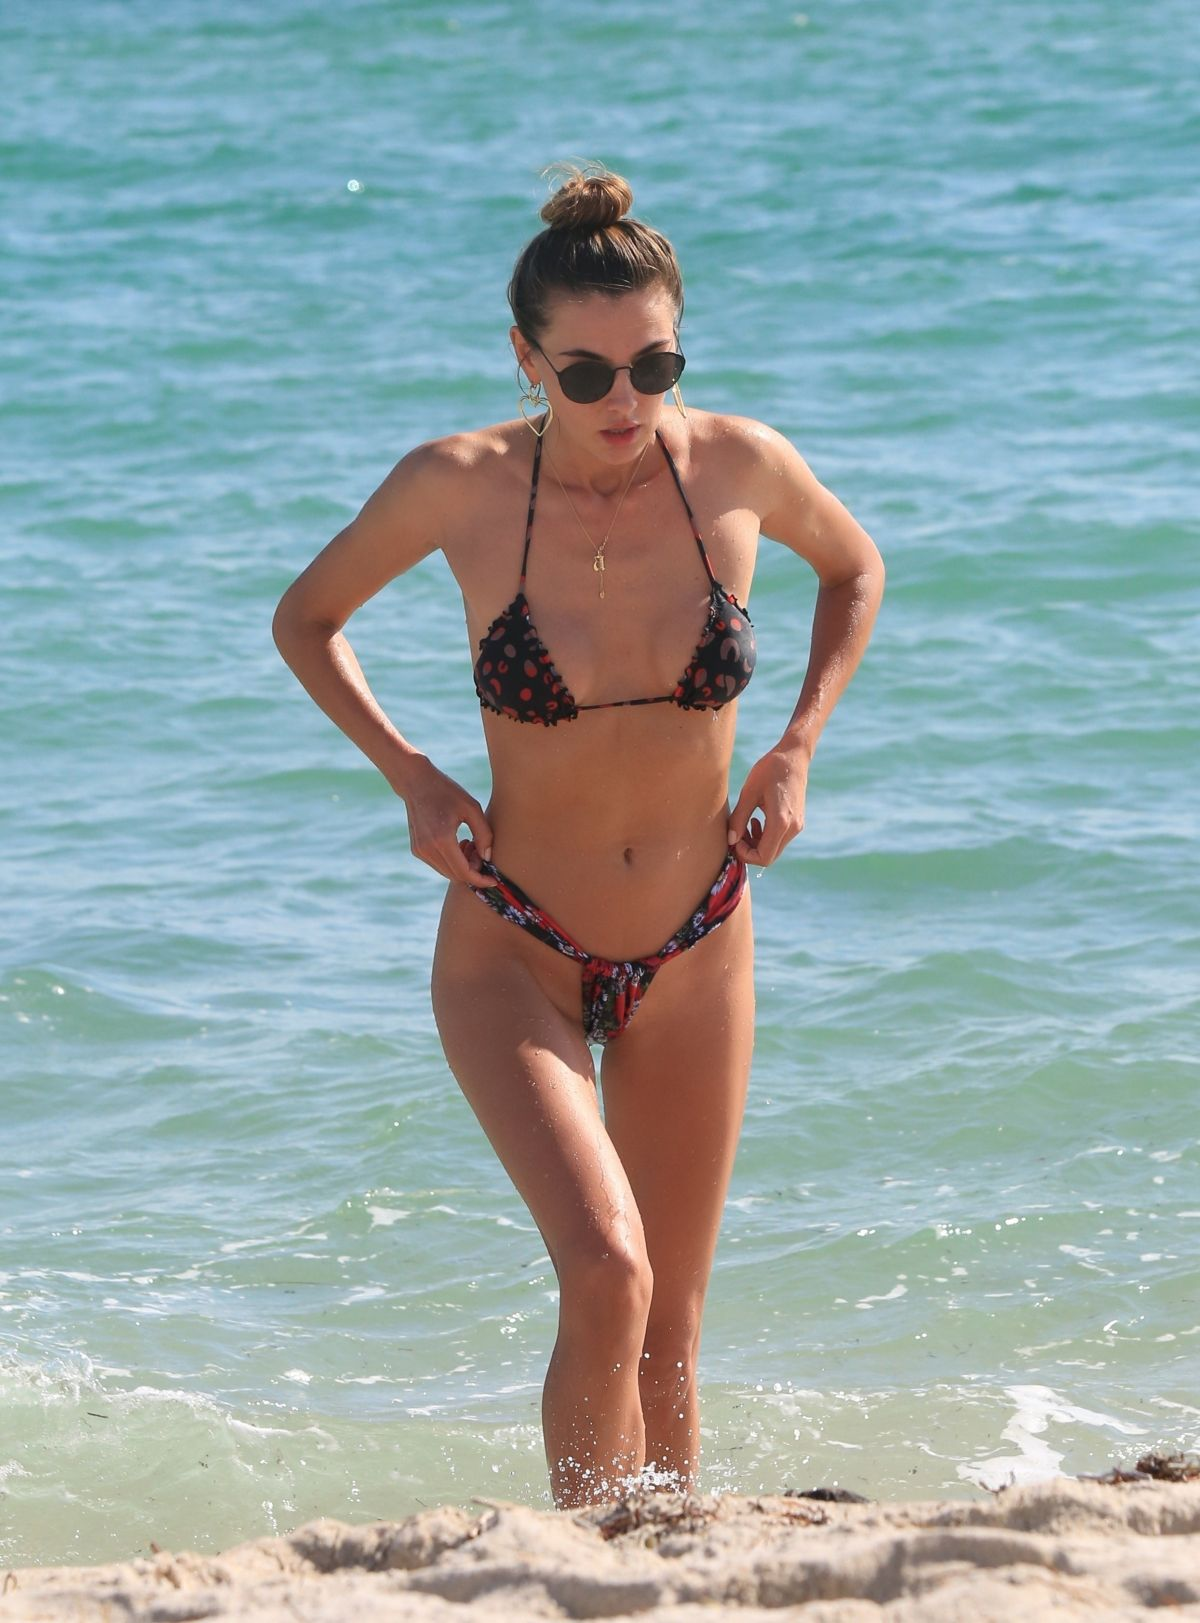 Alina Baikova in Bikini on the beach in Miami Pic 10 of 35